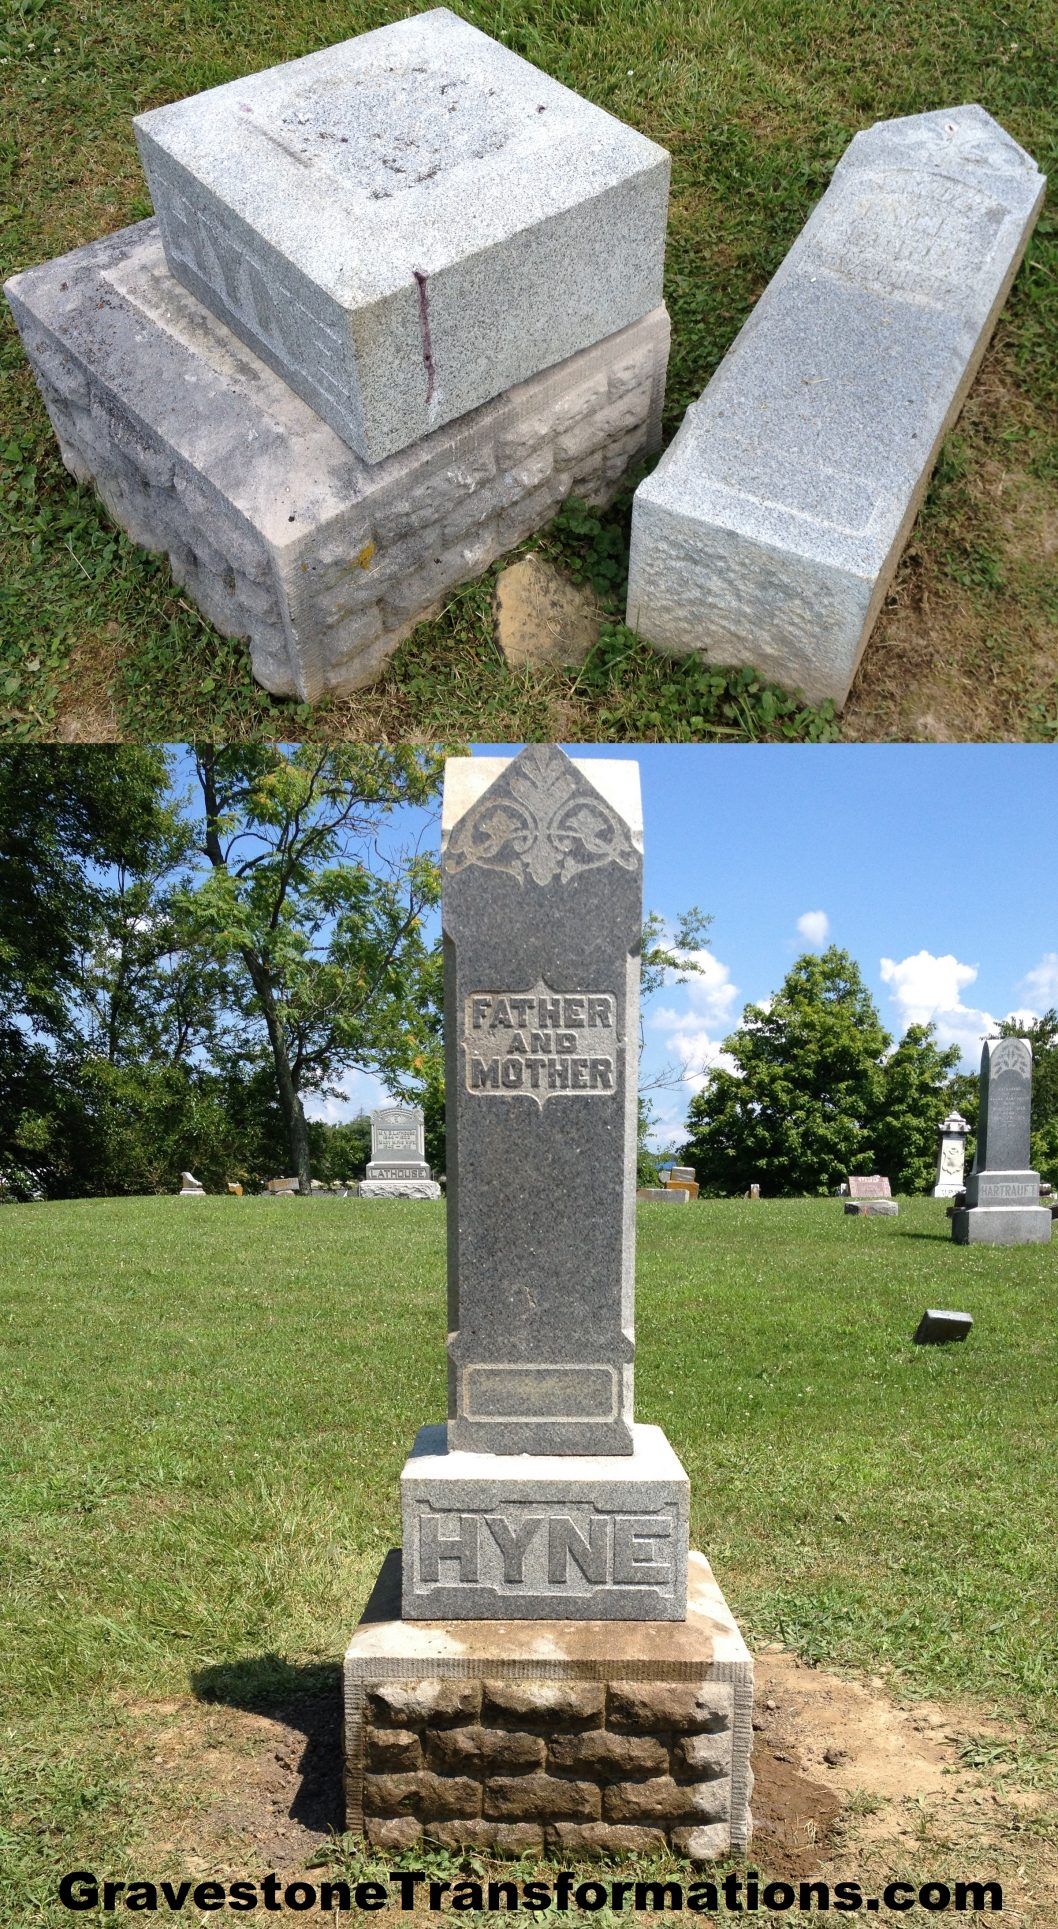 Gravestone Transformations - Samuel and Rebecca Hyne - Heidelberg Church Cemetery - Stoutsville, Ohio - Before and after cleaning and resetting